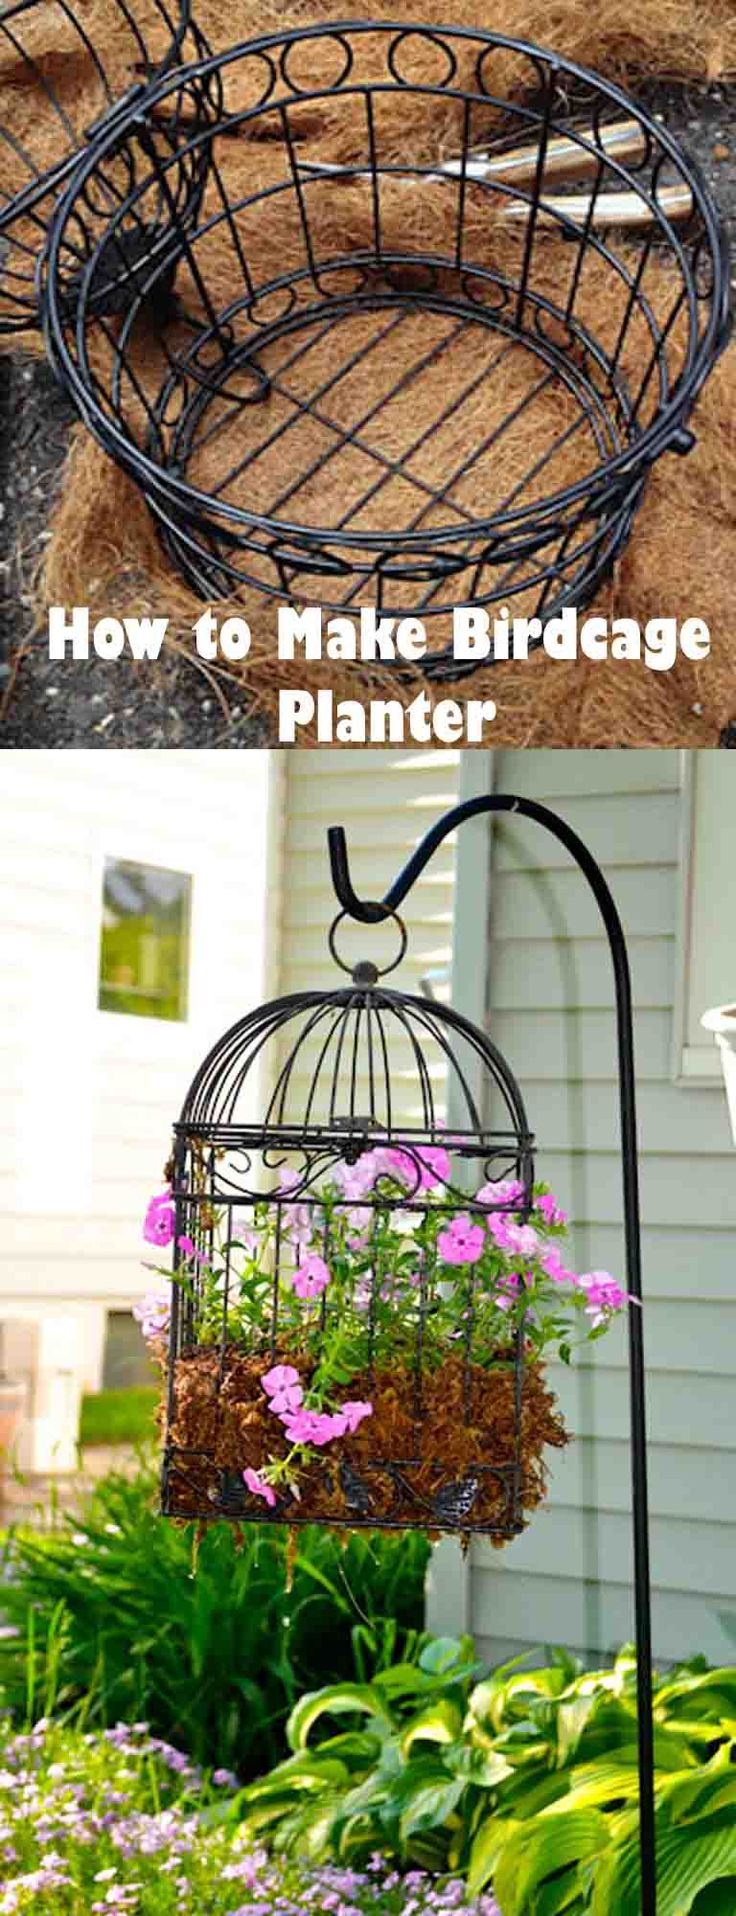 Best 20+ Hanging Baskets Ideas On Pinterest  Decorative Hanging Baskets,  Hanging Basket Plants And Hanging Basket Garden